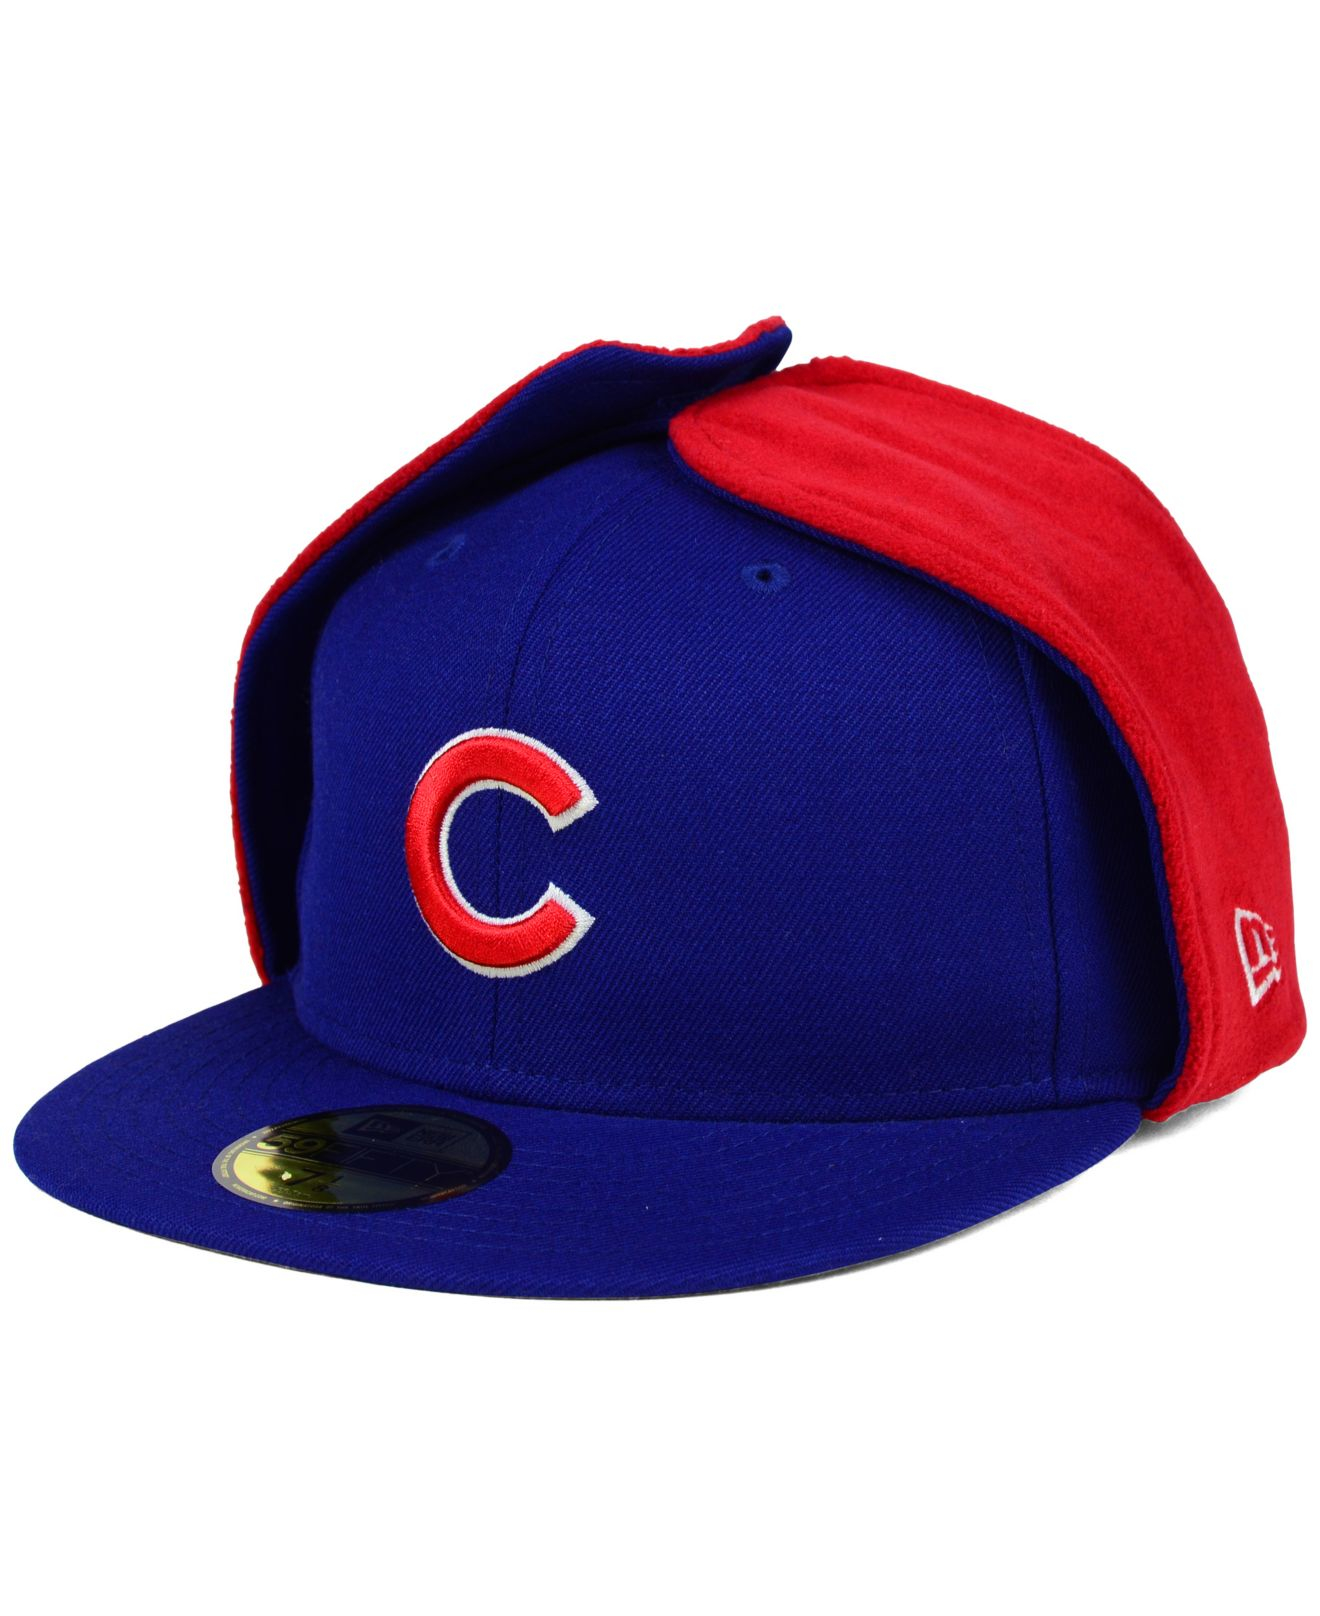 268df48035f Lyst - KTZ Chicago Cubs Dog Ear 59fifty Cap in Red for Men